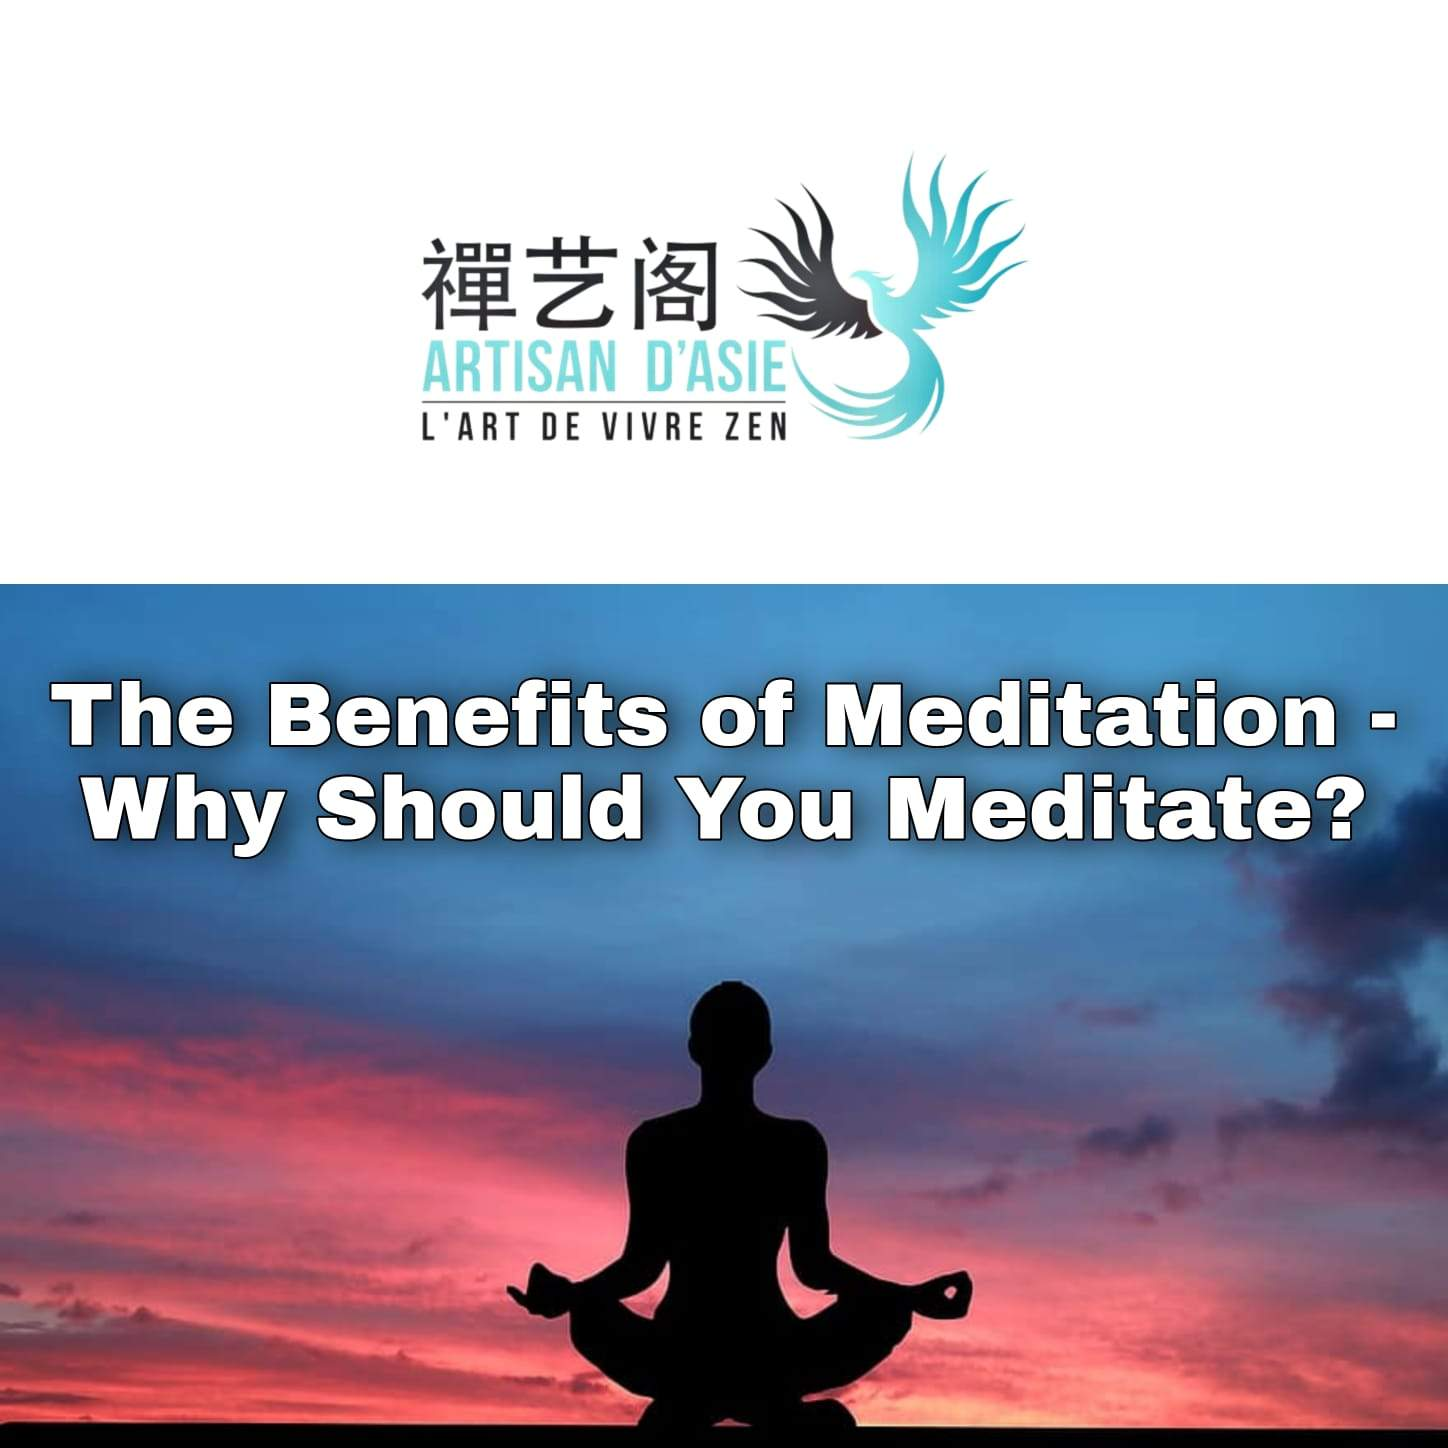 The Benefits of Meditation - Why Should You Meditate?